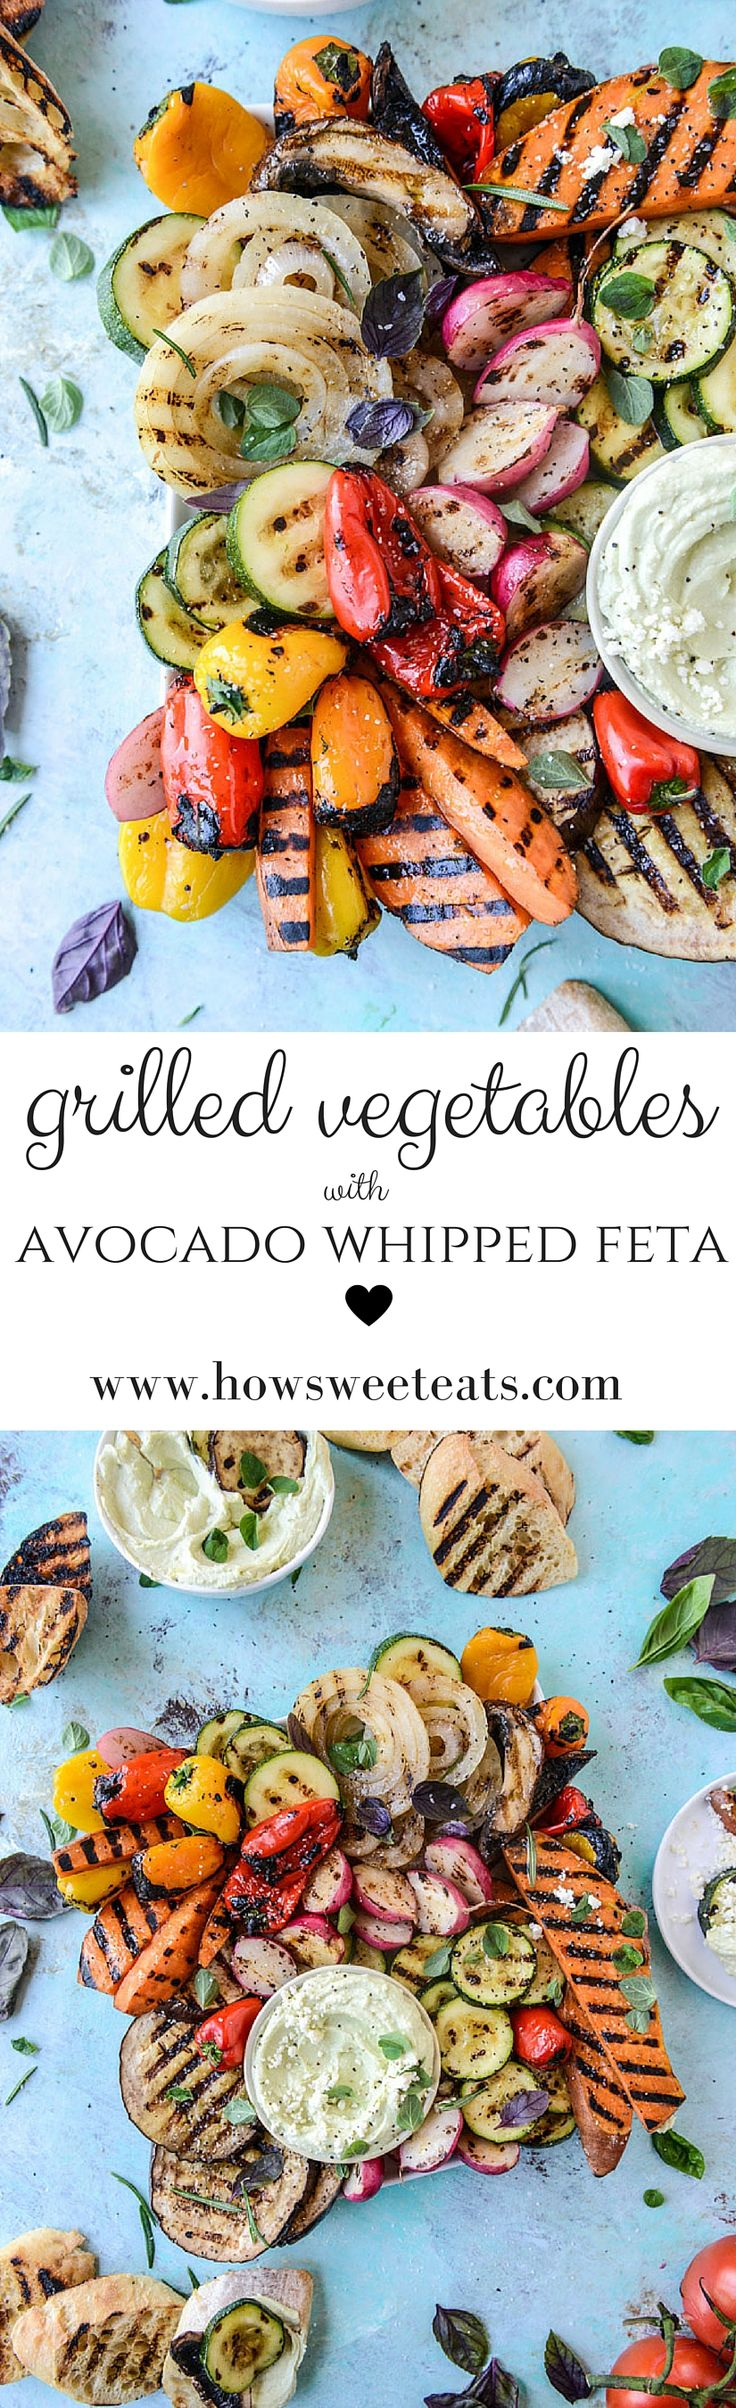 Marinated Grilled Veggies with Avocado Whipped Feta by @howsweeteats I howsweeteats.com